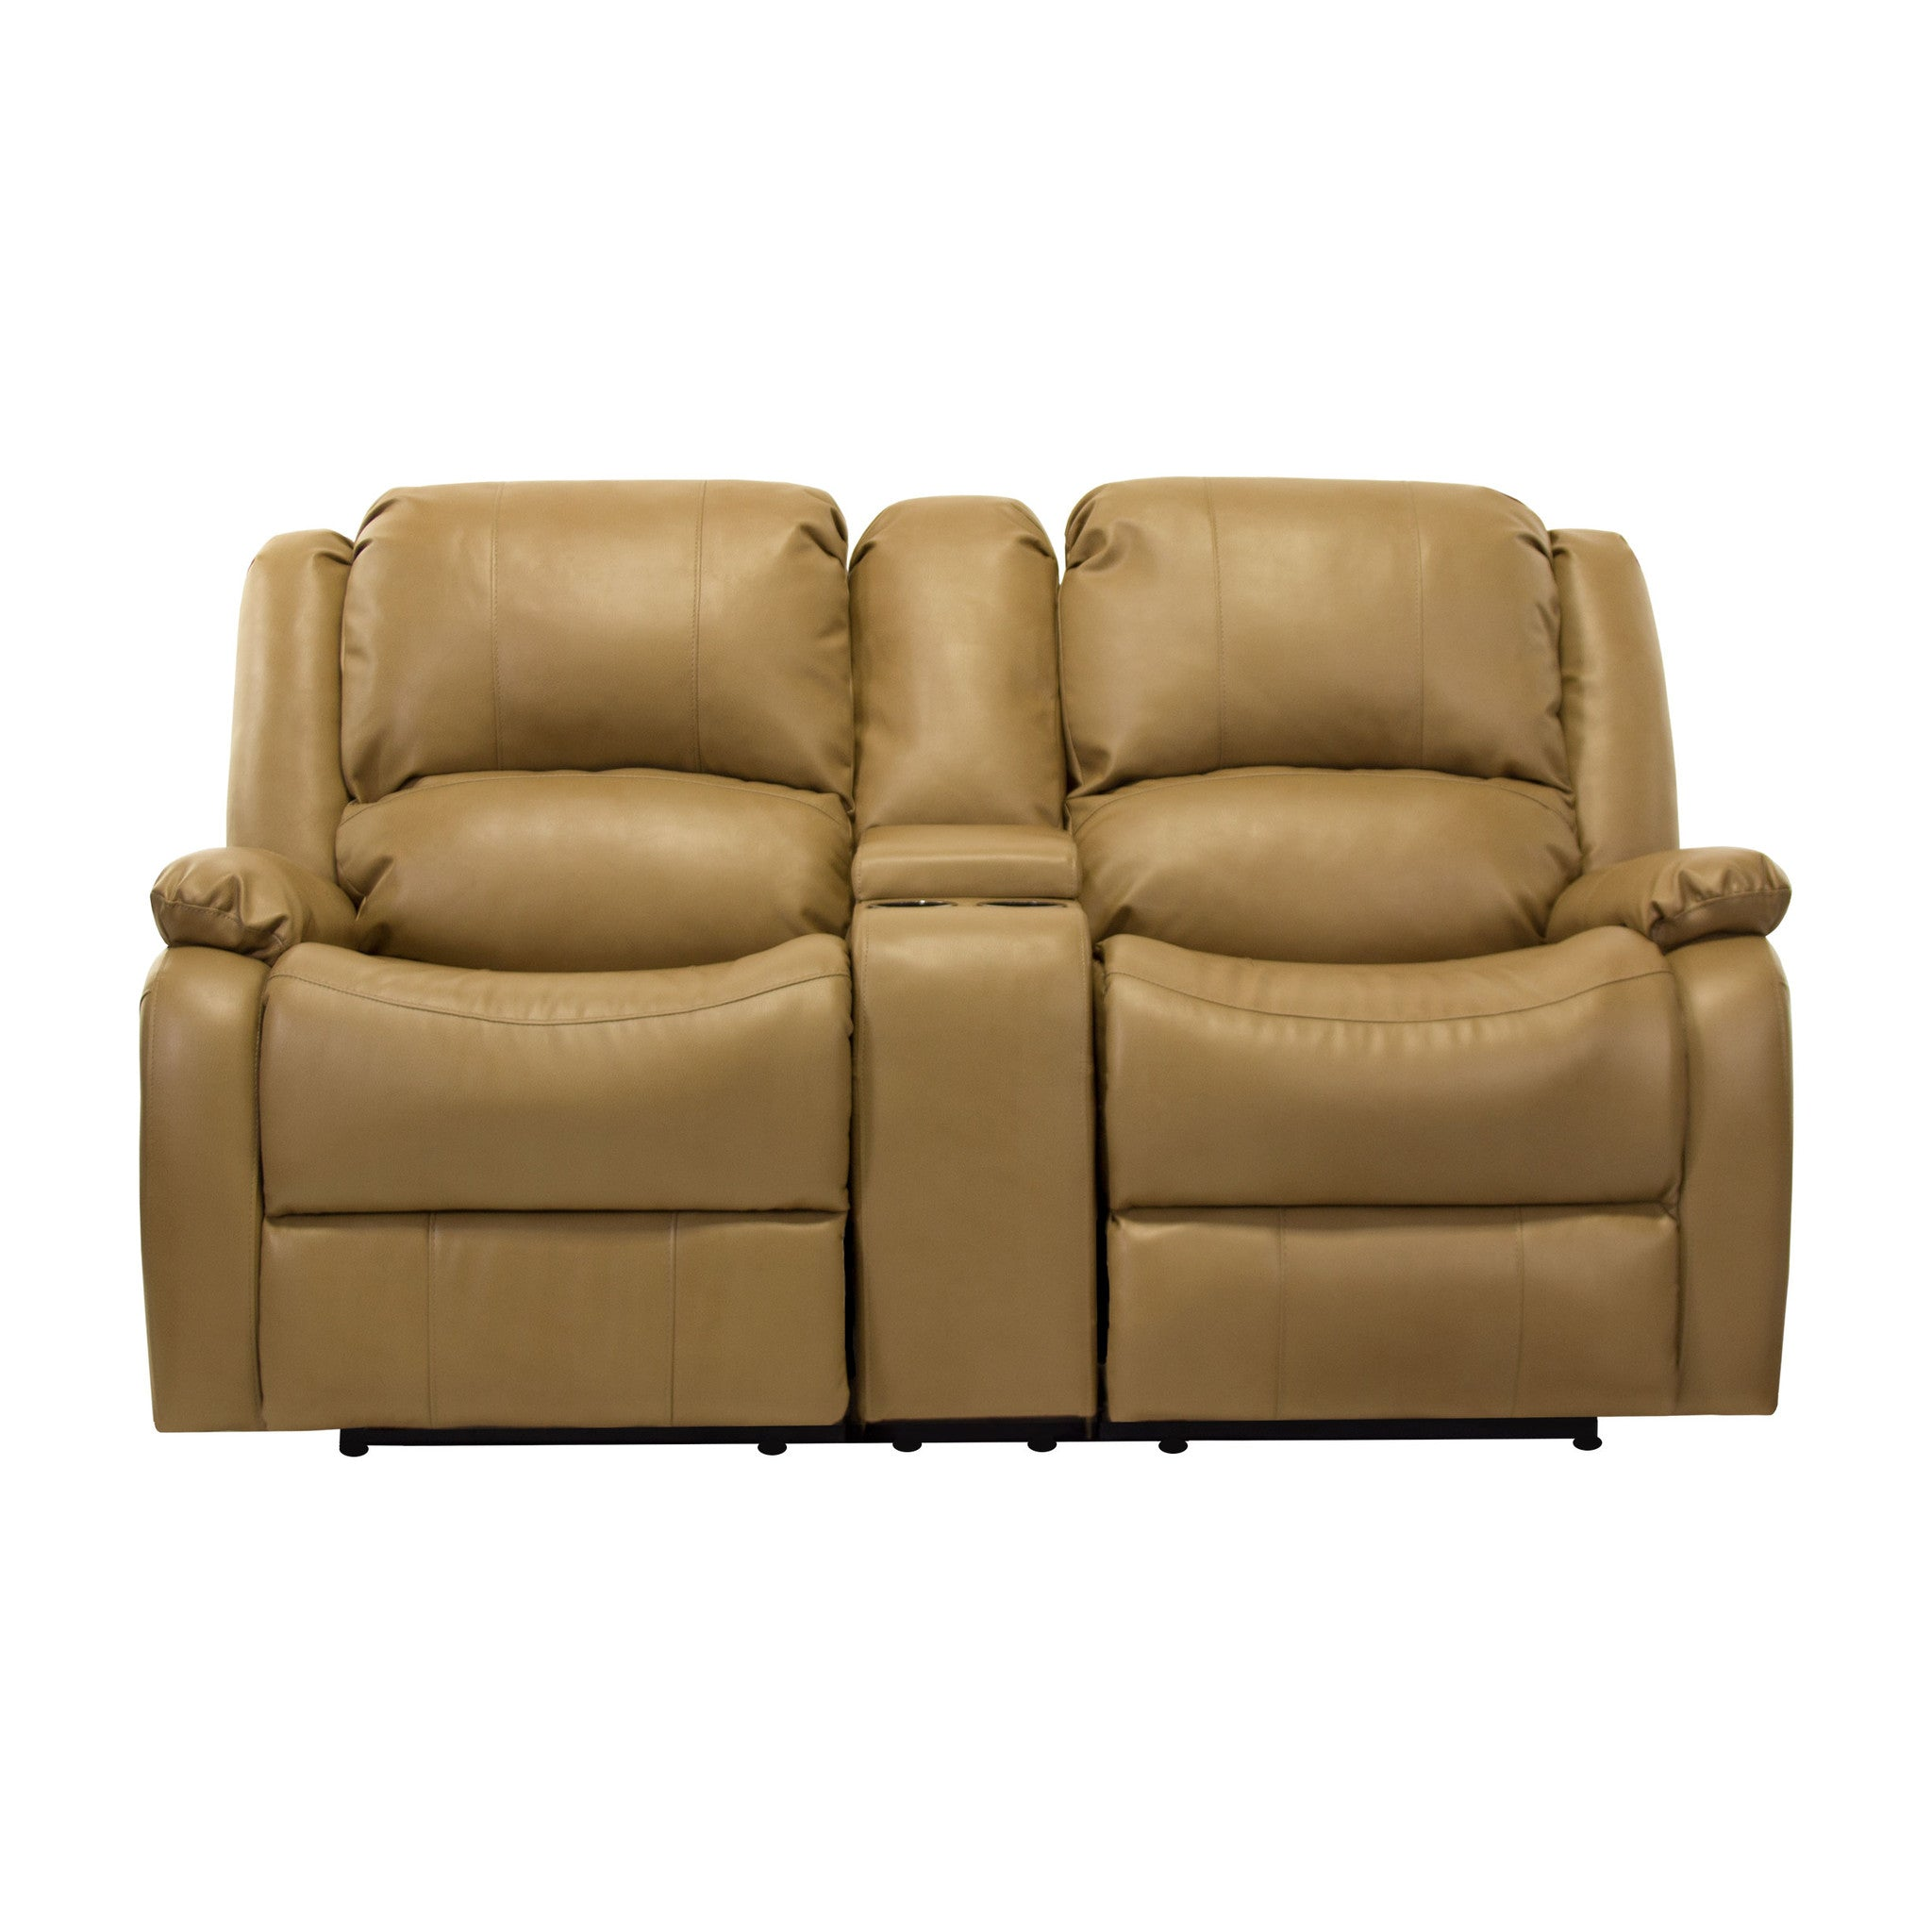 Rv Double Recliner Sofa Sofa Review